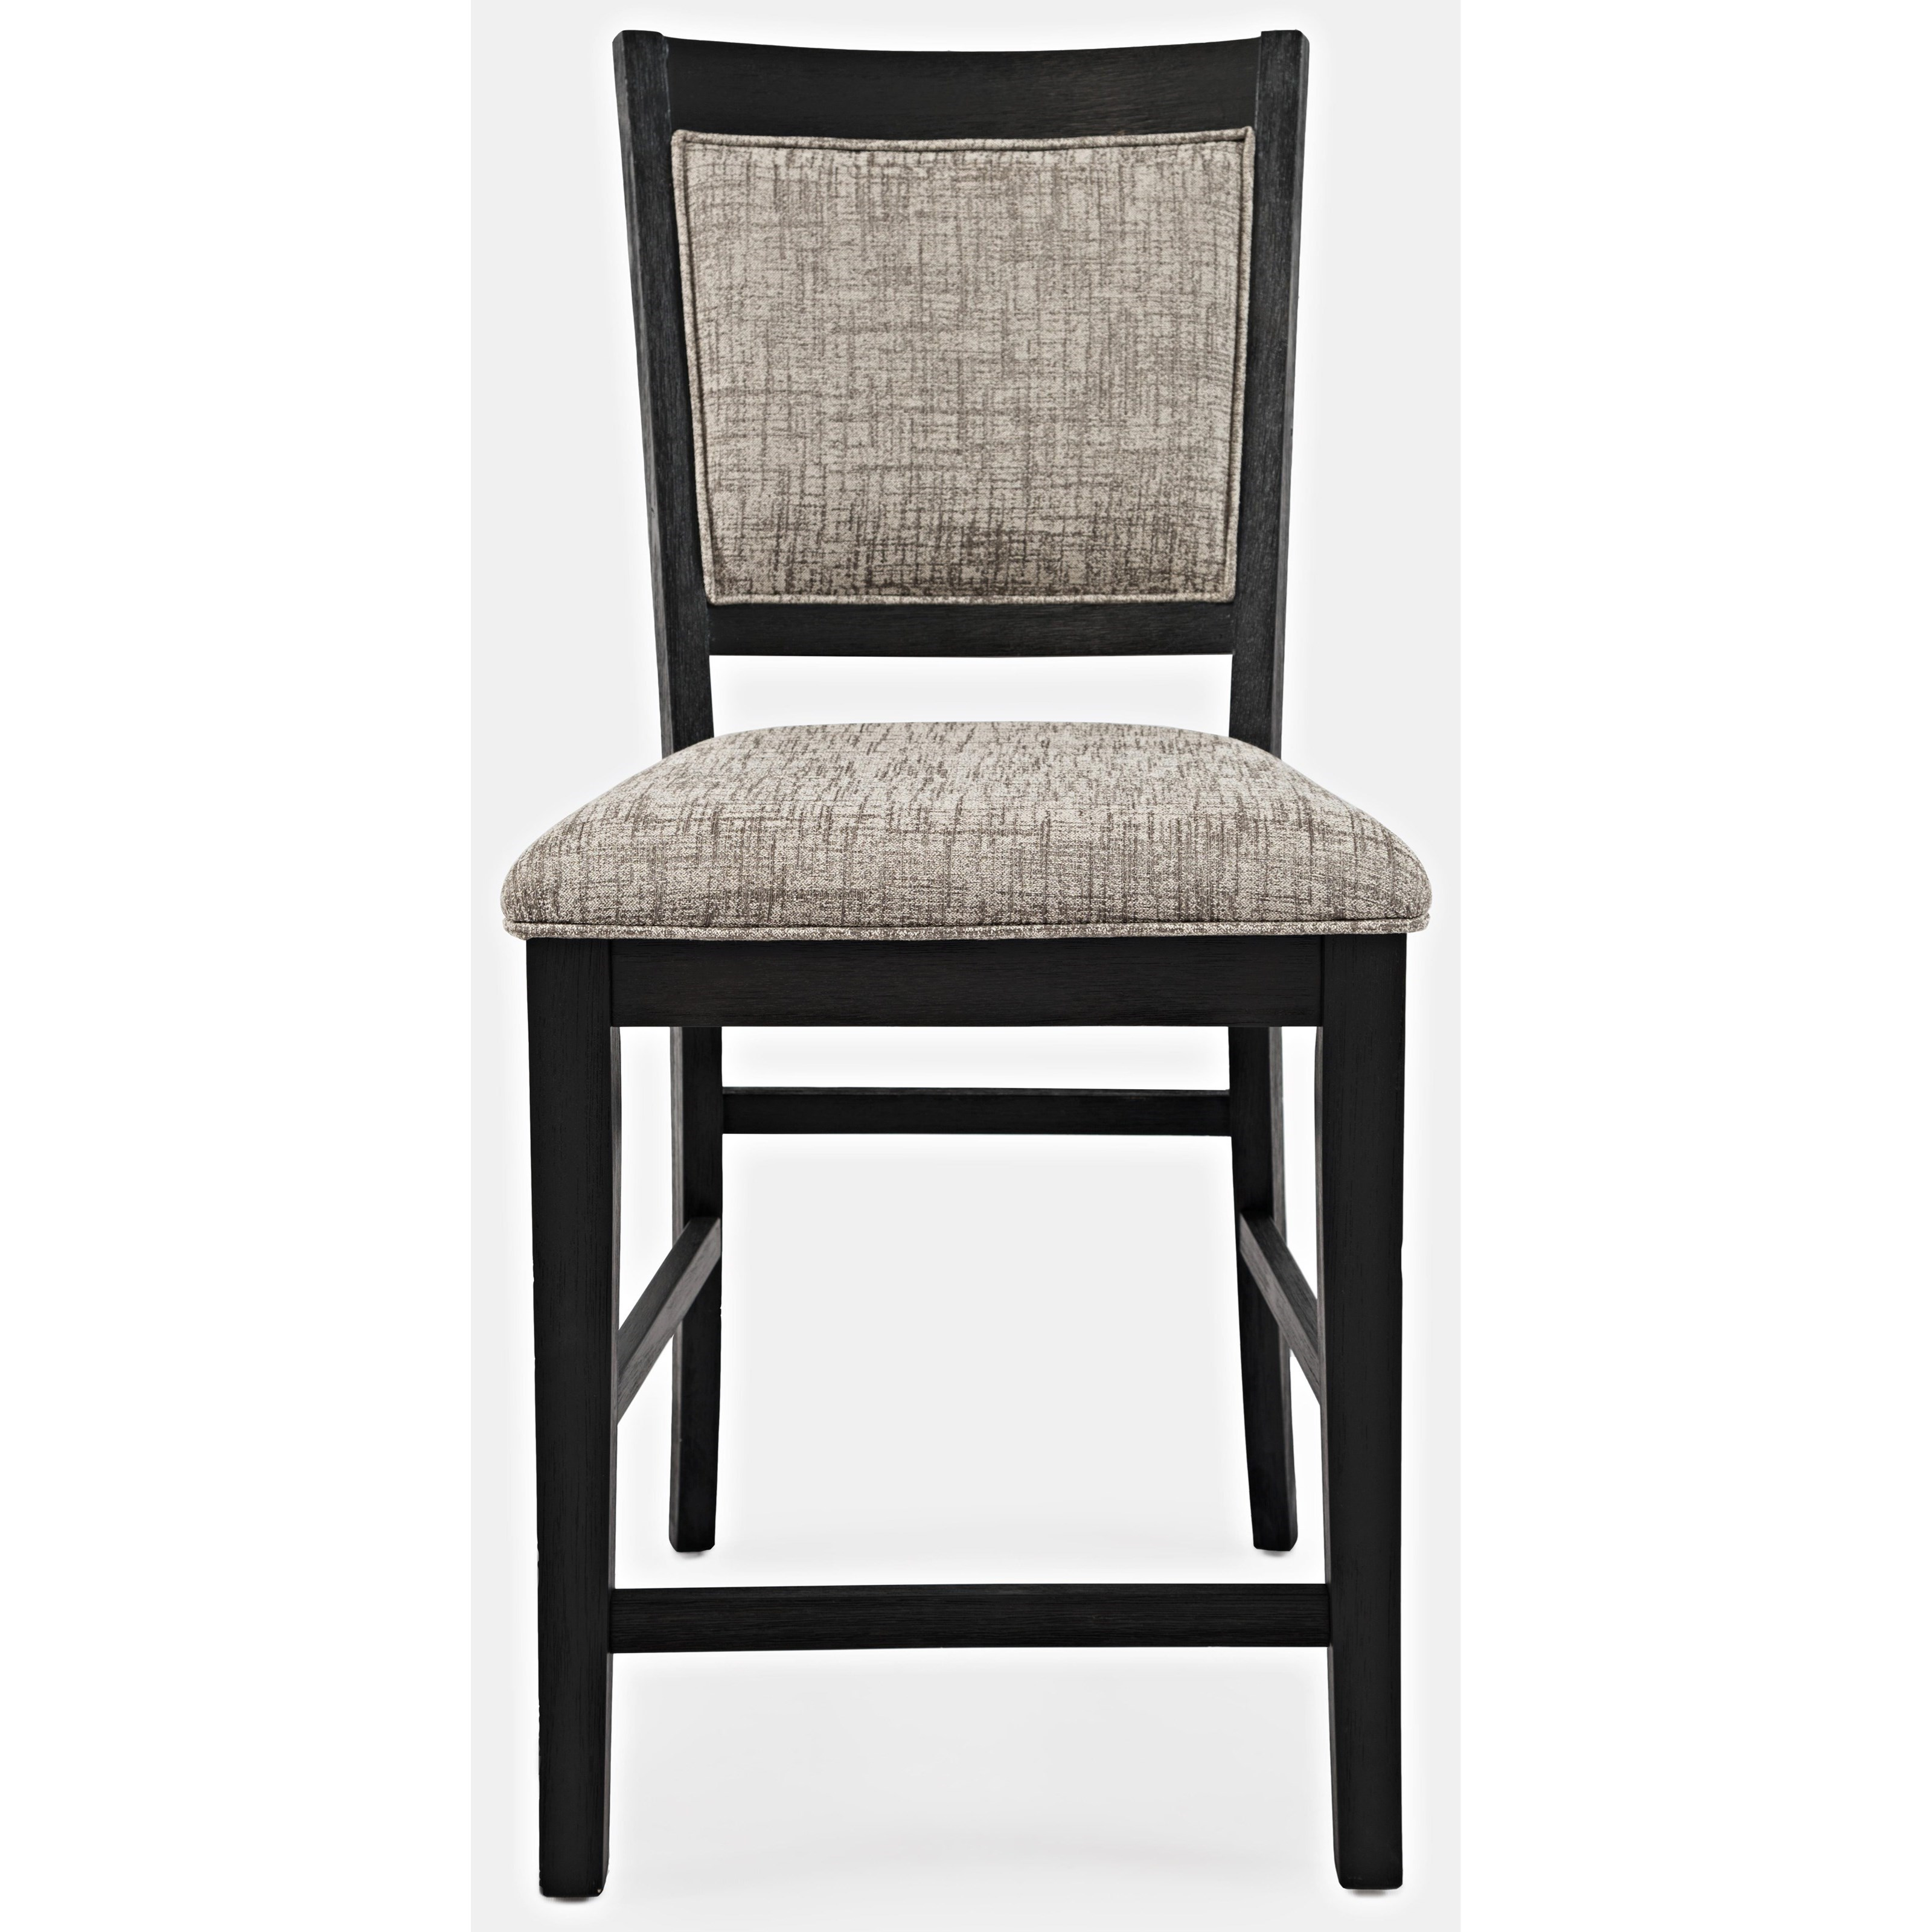 Altamonte Upholstered Counter Stool by VFM Signature at Virginia Furniture Market